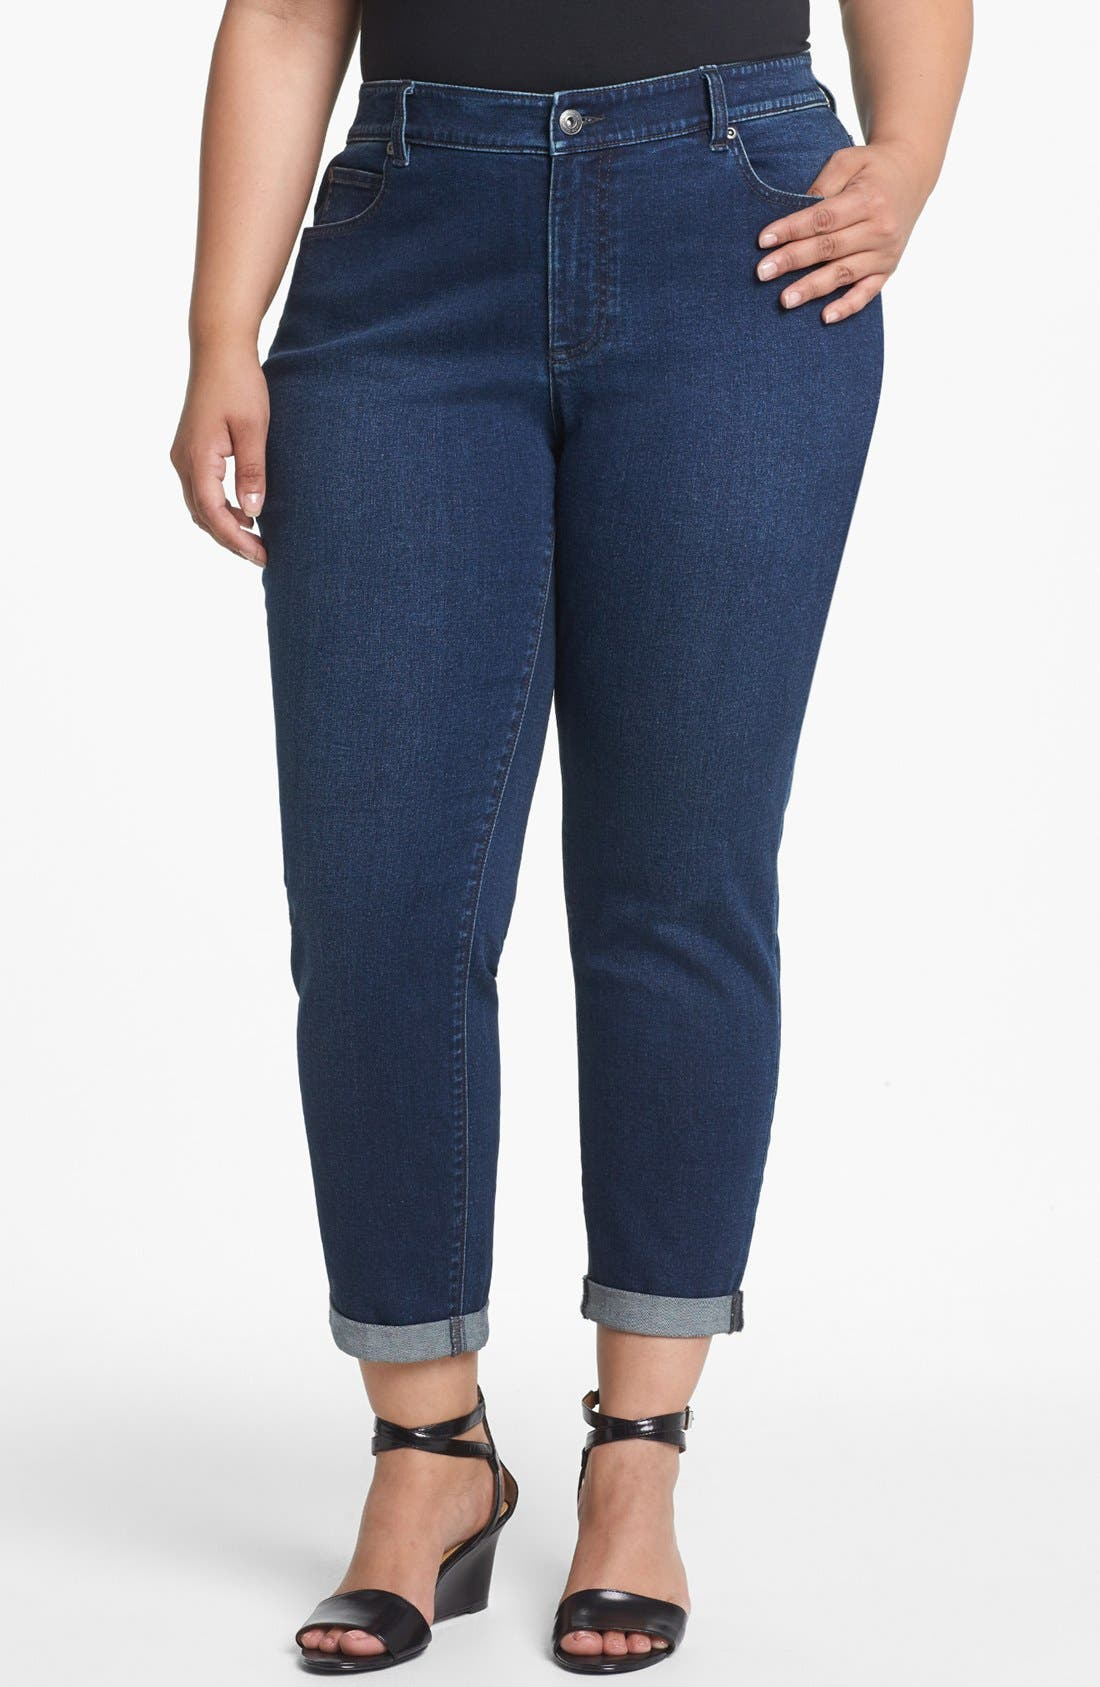 Alternate Image 1 Selected - Two by Vince Camuto Cuff Crop Jeans (Plus Size)